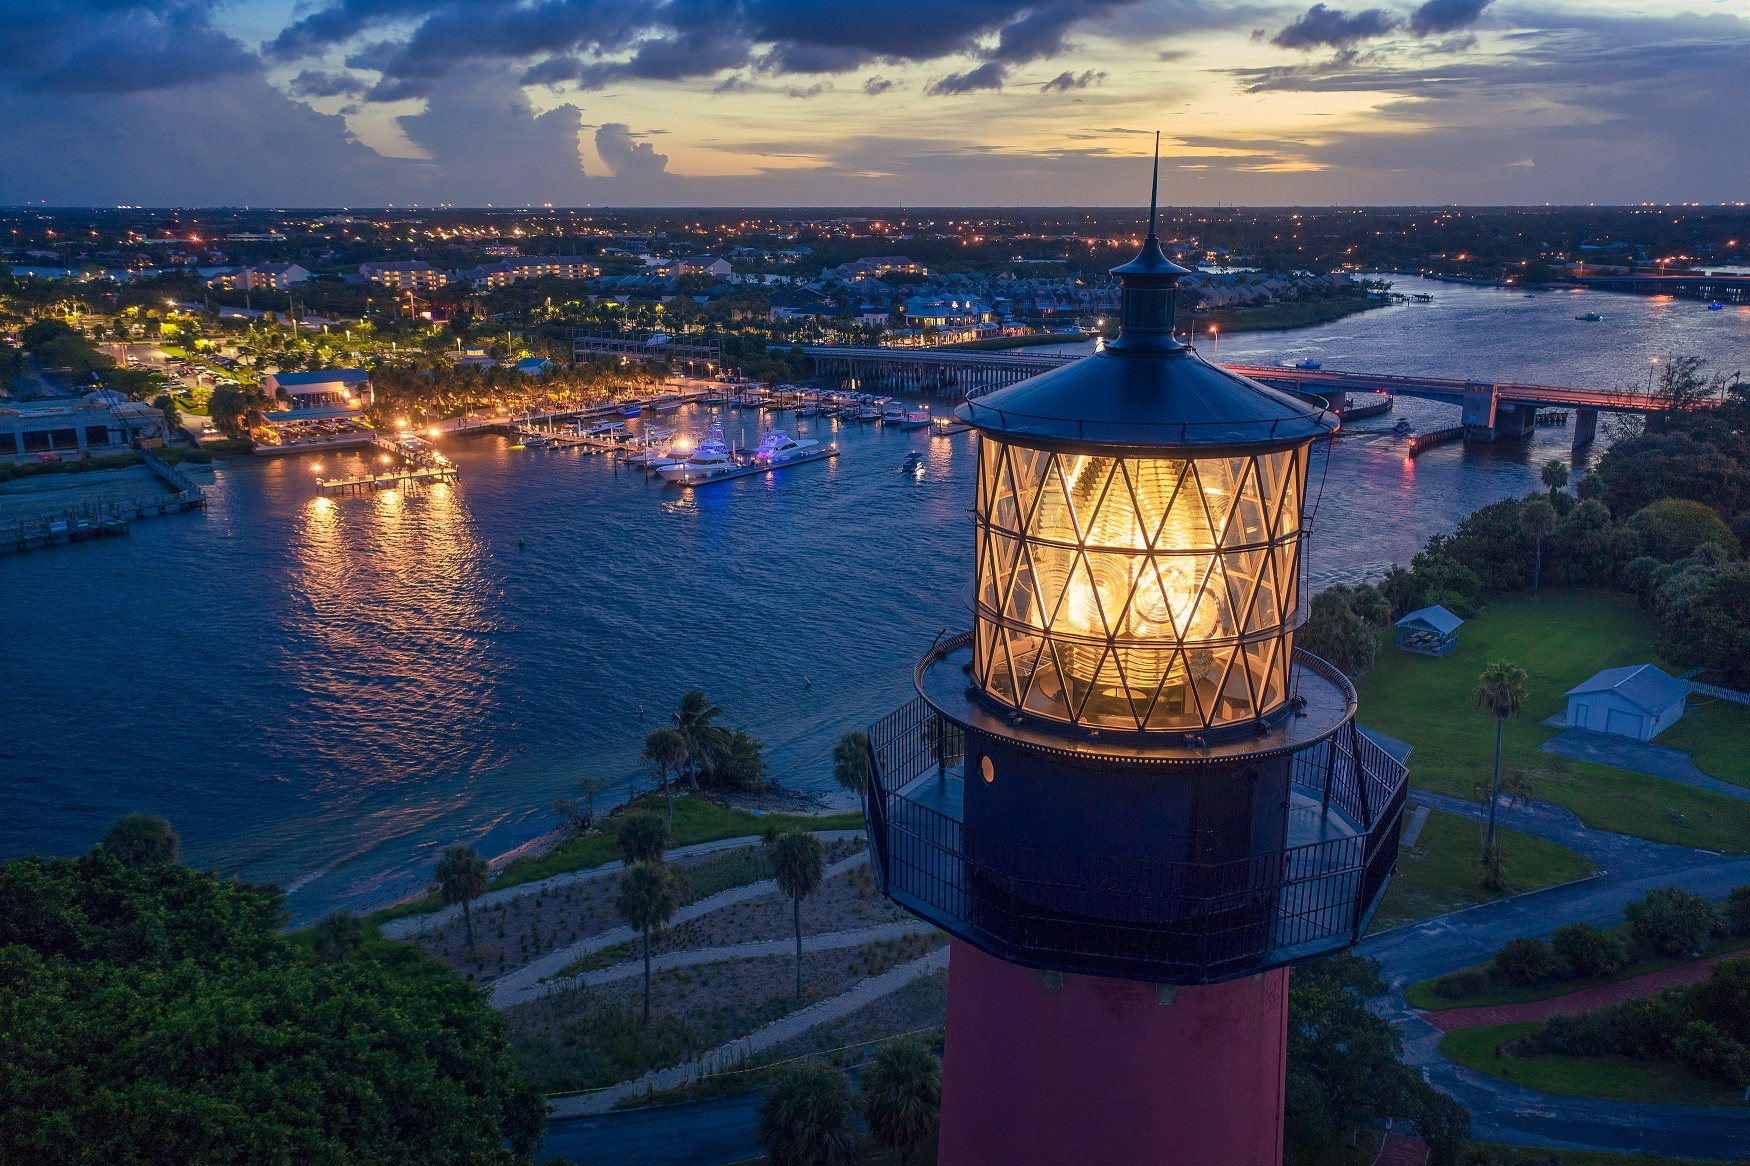 Jupiter Lighthouse Nightlife Waterway Aerial Photography (c) Discover The Palm Beaches